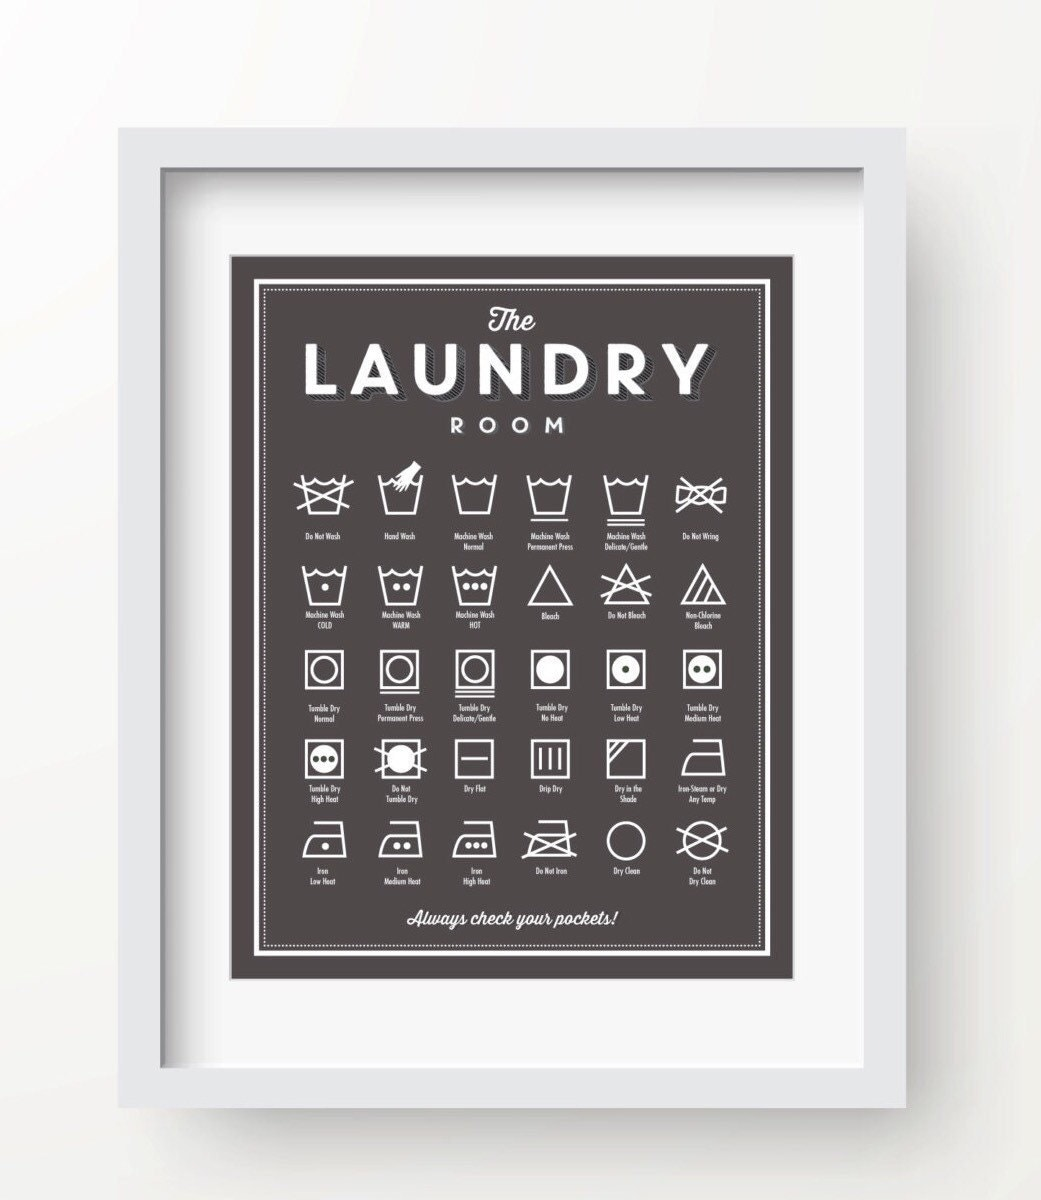 Laundry Room Decor Slate Color Laundry Wall Decor Laundry Guide Laundry Printable